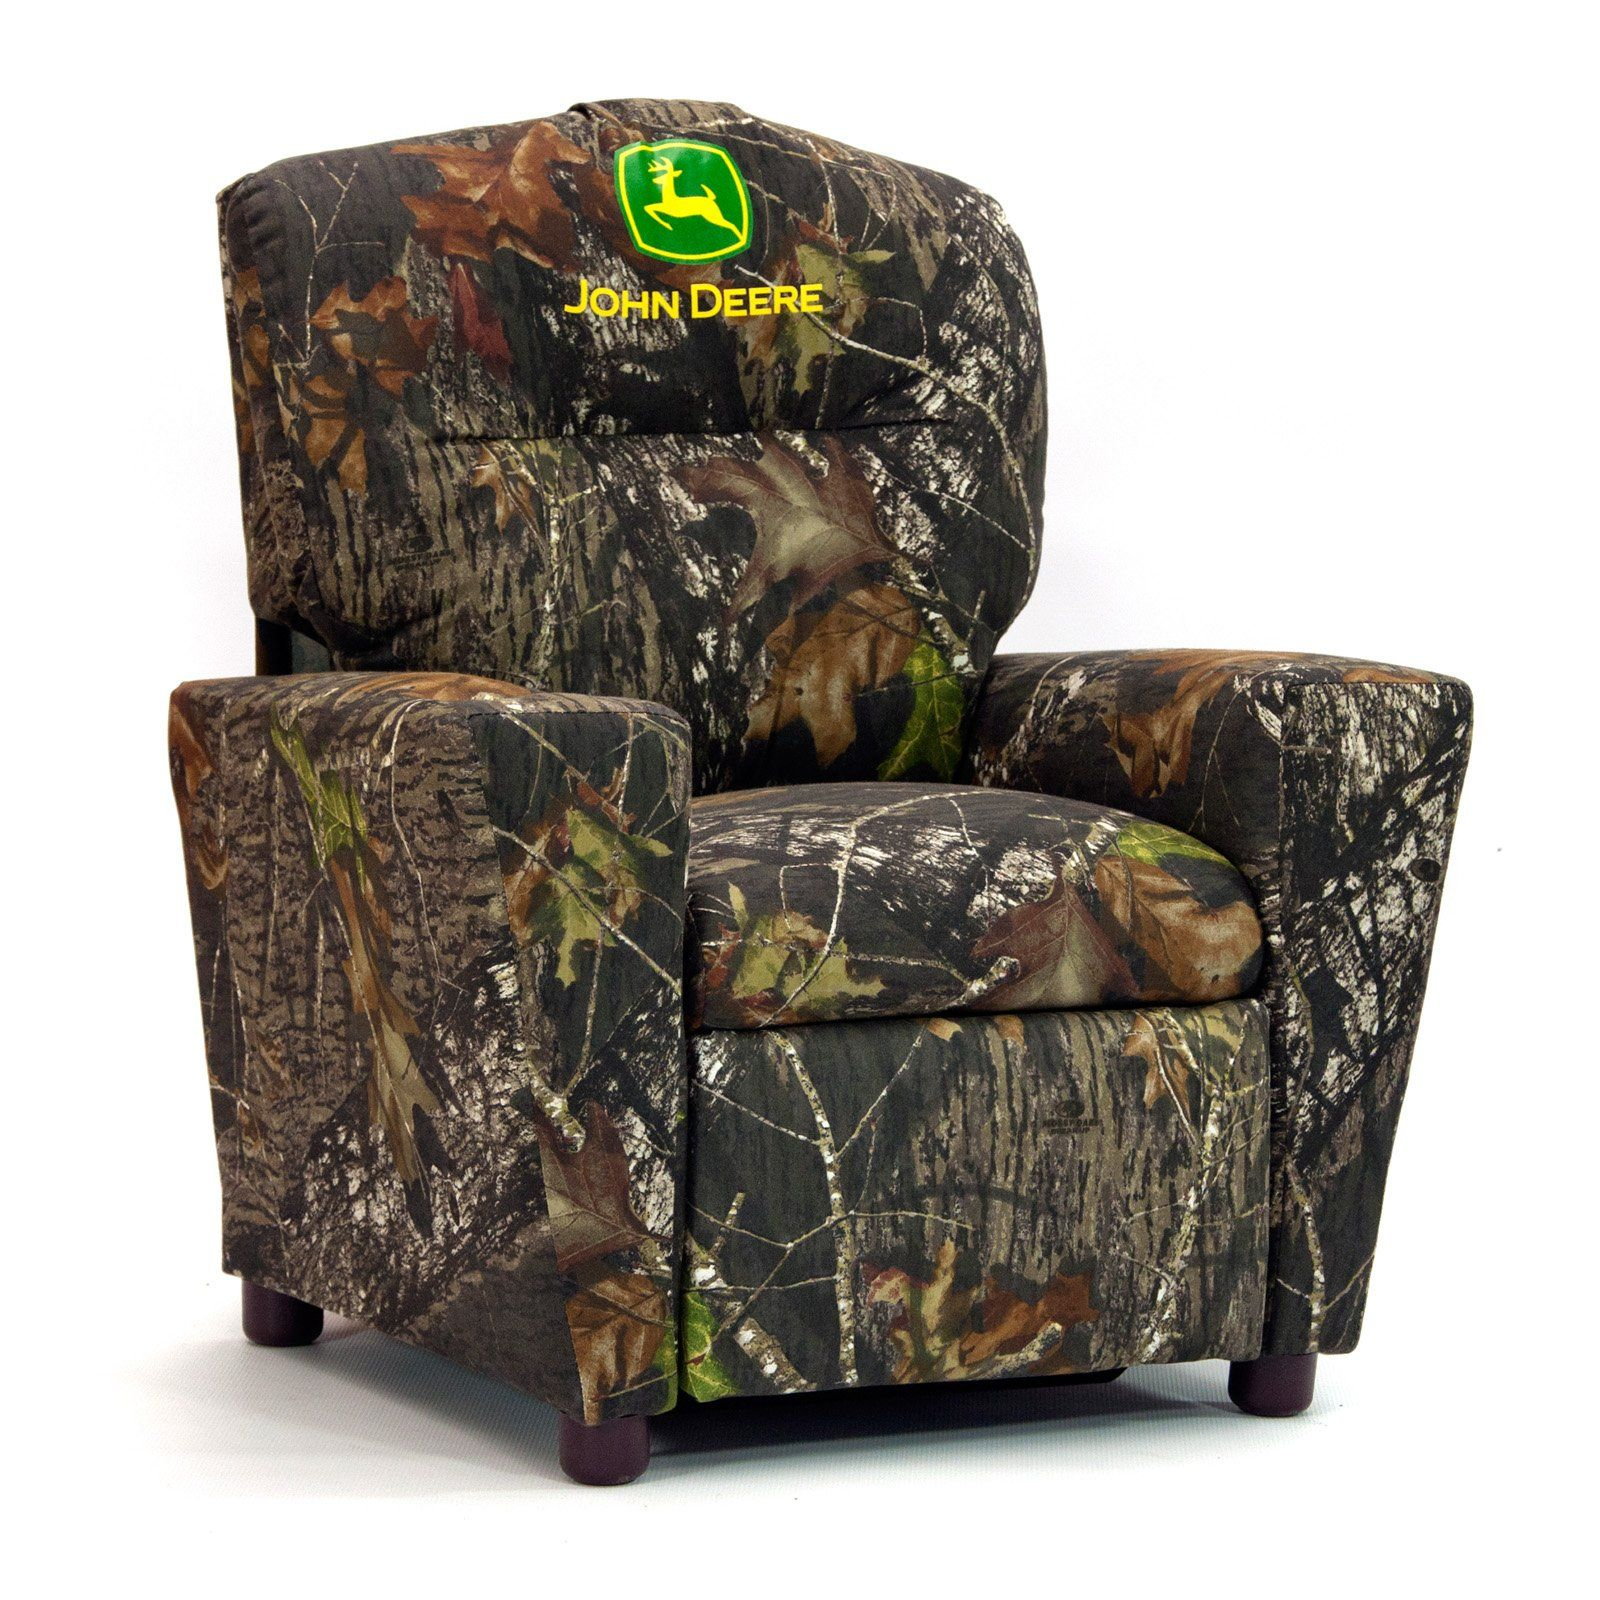 Kidz World Mossy Oak John Deere Kids Recliner 155 00